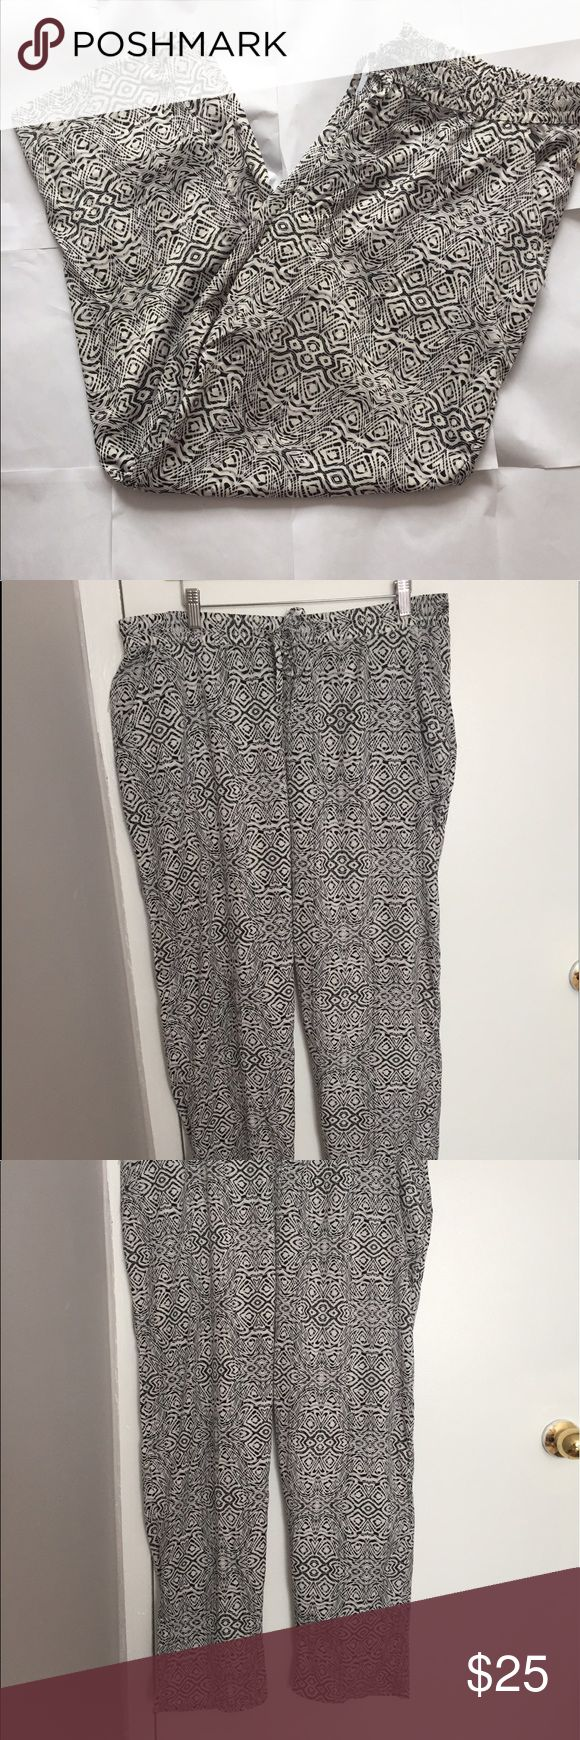 NWT Tribal Print Lightweight Ankle Pants Size 1X NWT Soft and very lightweight women's jogger pants with tags! Elastic waist, with pockets! 100% Lightweight Polyester. 28 inseam, waist is   37 all around with plenty of stretch, really pretty in person! Mlle Gabrielle Pants Ankle & Cropped